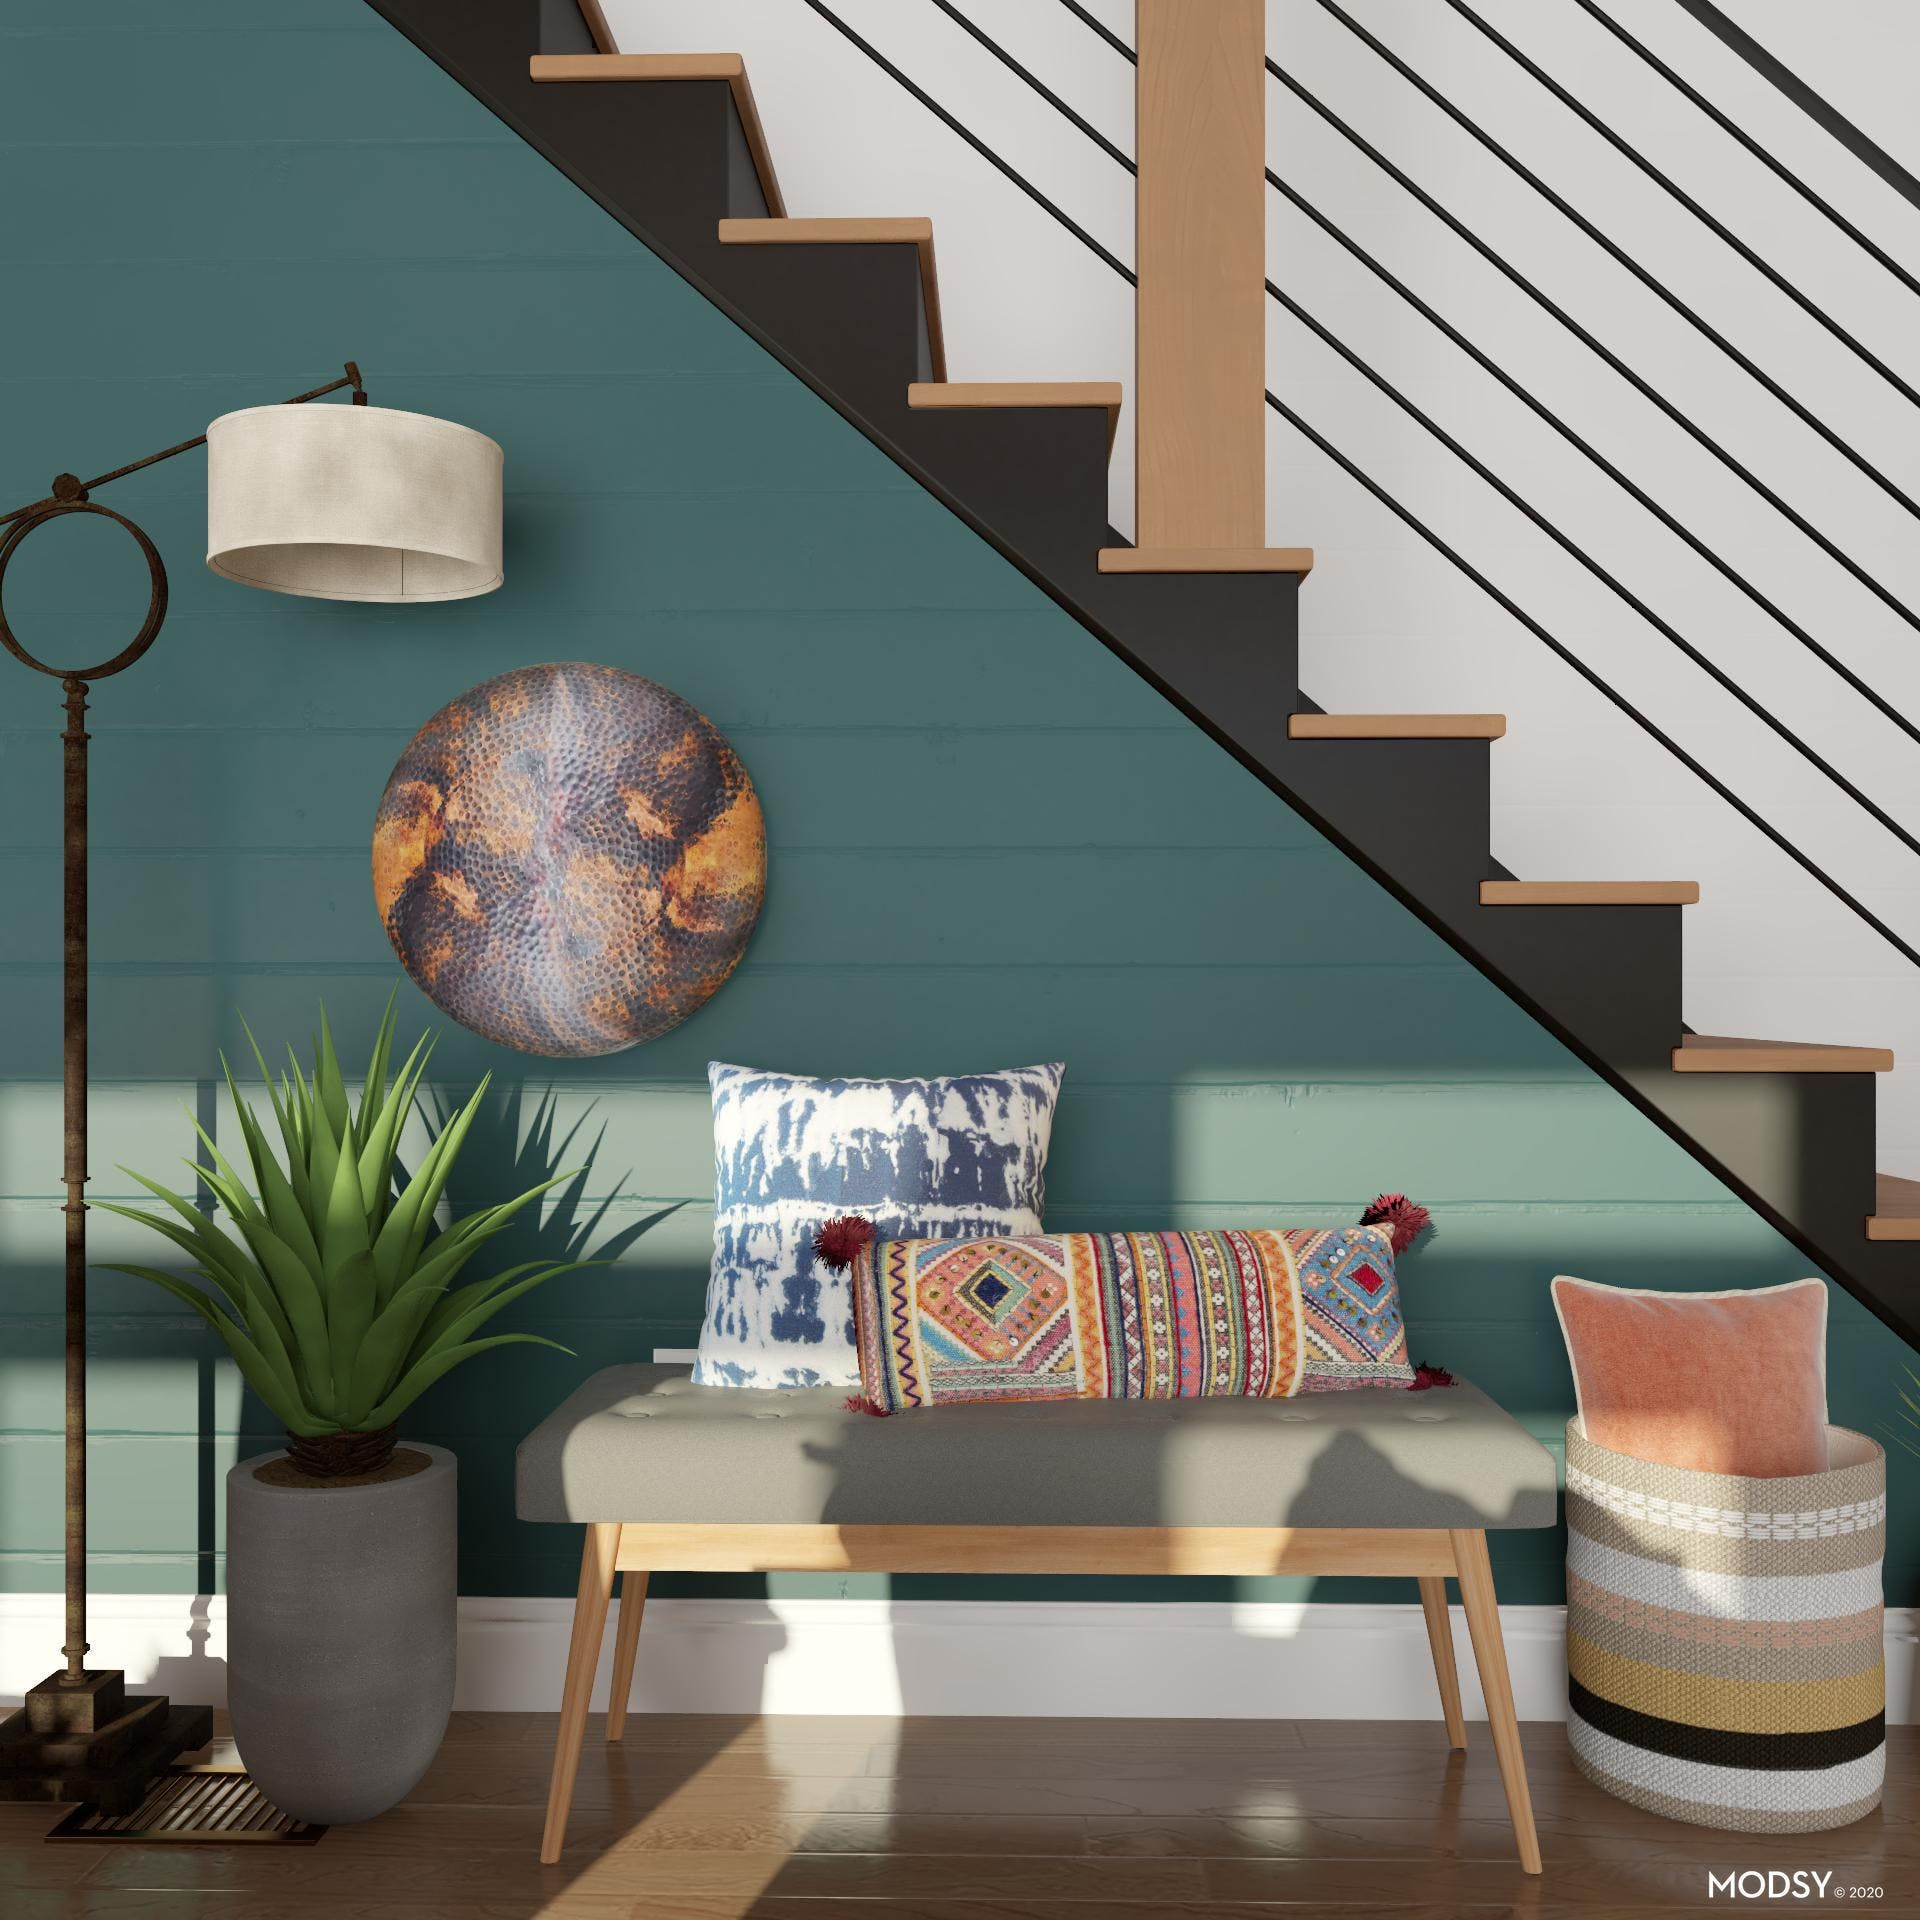 Staircases: Designing At An Angle